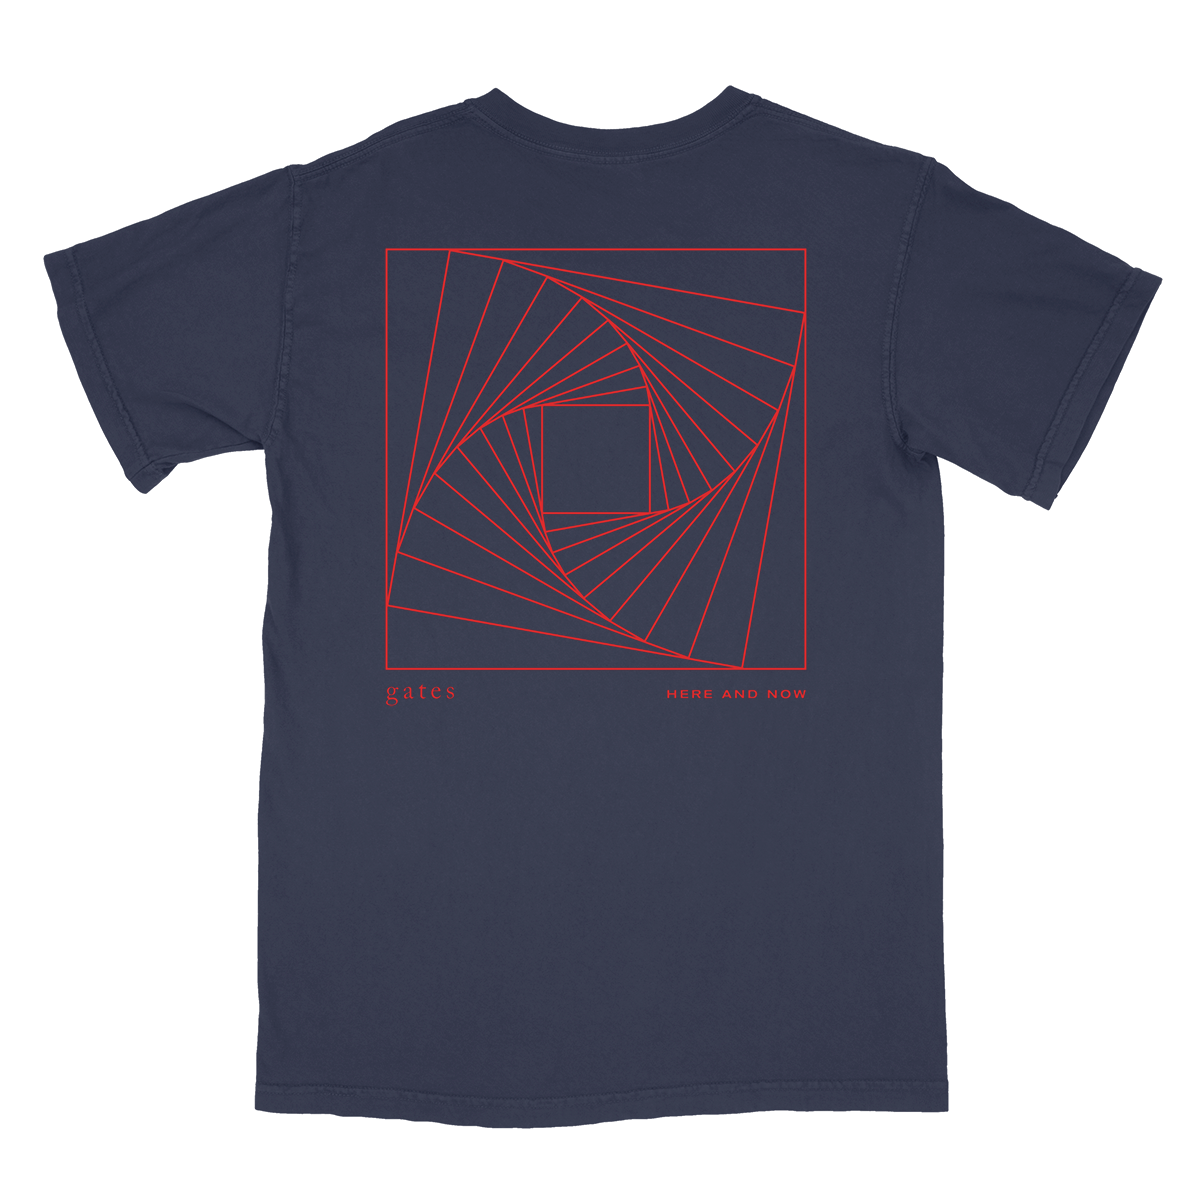 Gates -- Here and Now Tee